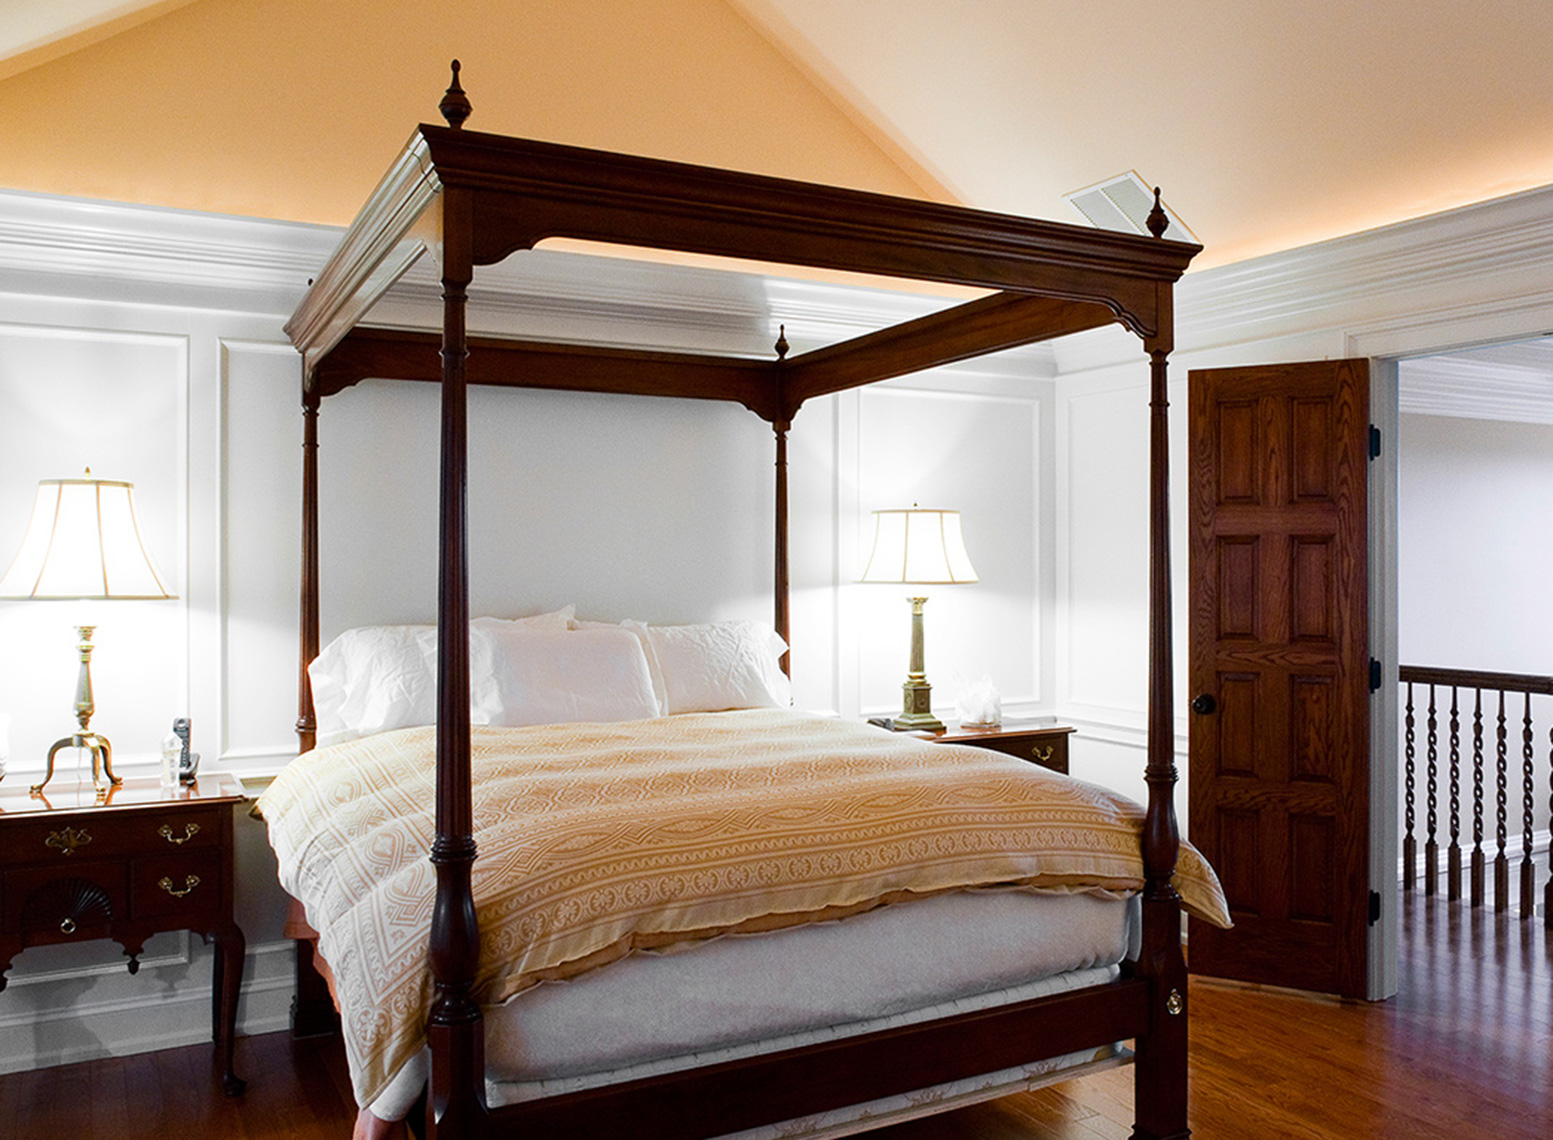 custom cabinets nj-Traditional Bedroom Bed Dressing Room